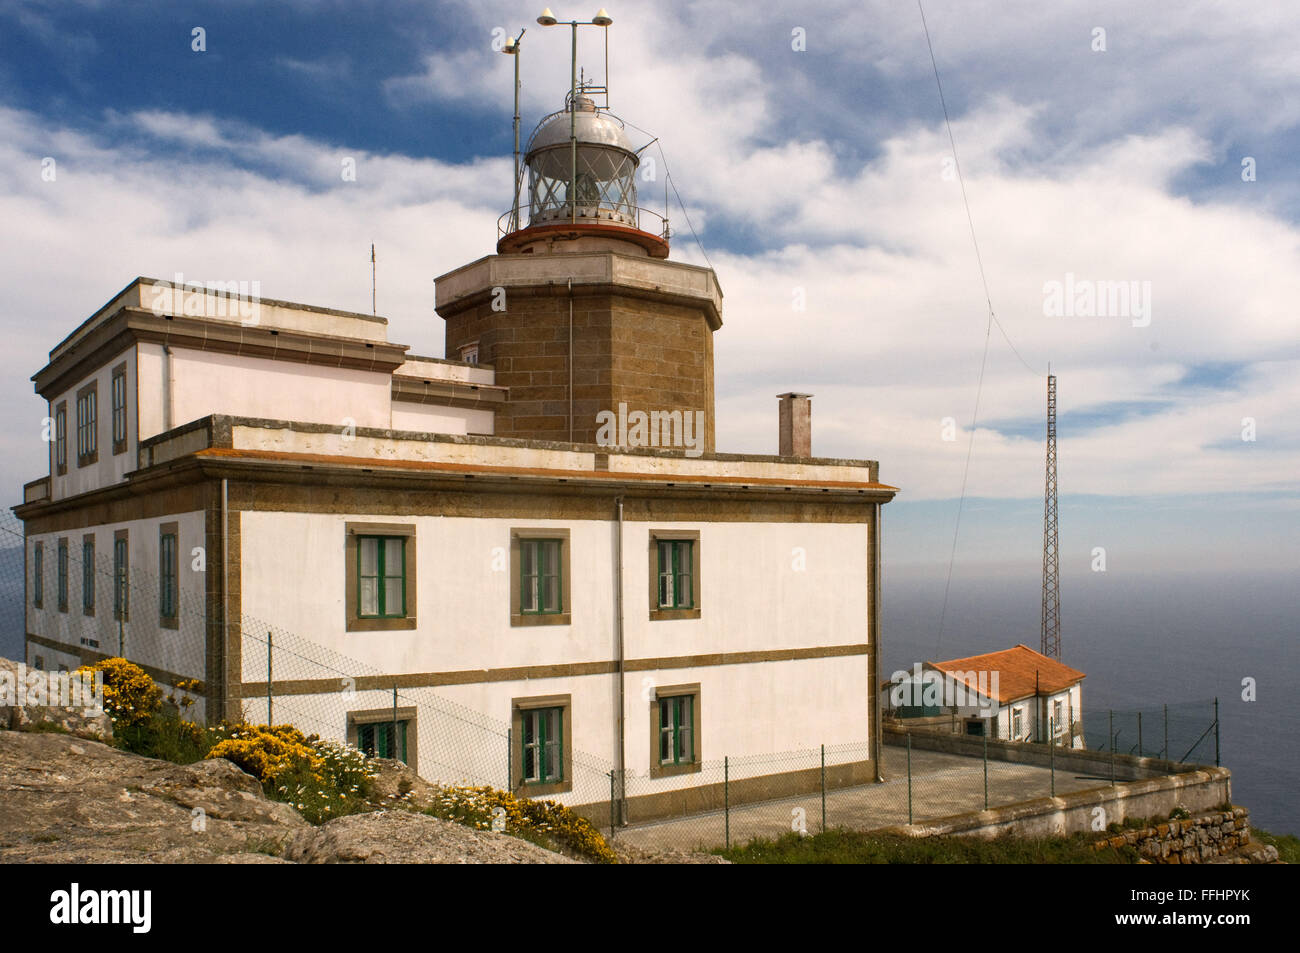 Way of St. James, Jacobean Route. Finis Terrae light house. Fisterre, Finisterre, A Coruña. Finisterre Lighthouse - Stock Image